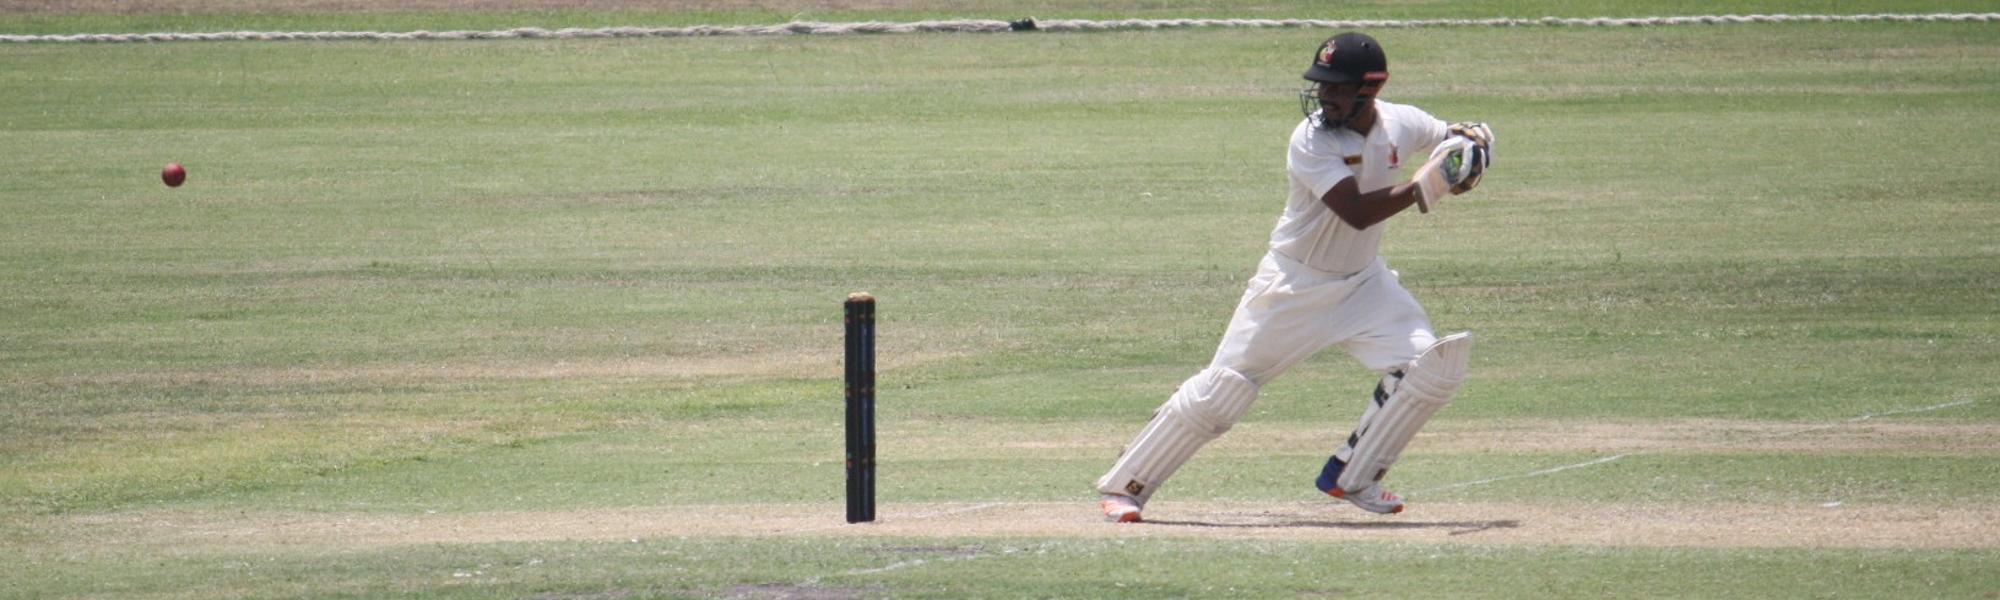 Norman Vanua guiding one through slips .JPG